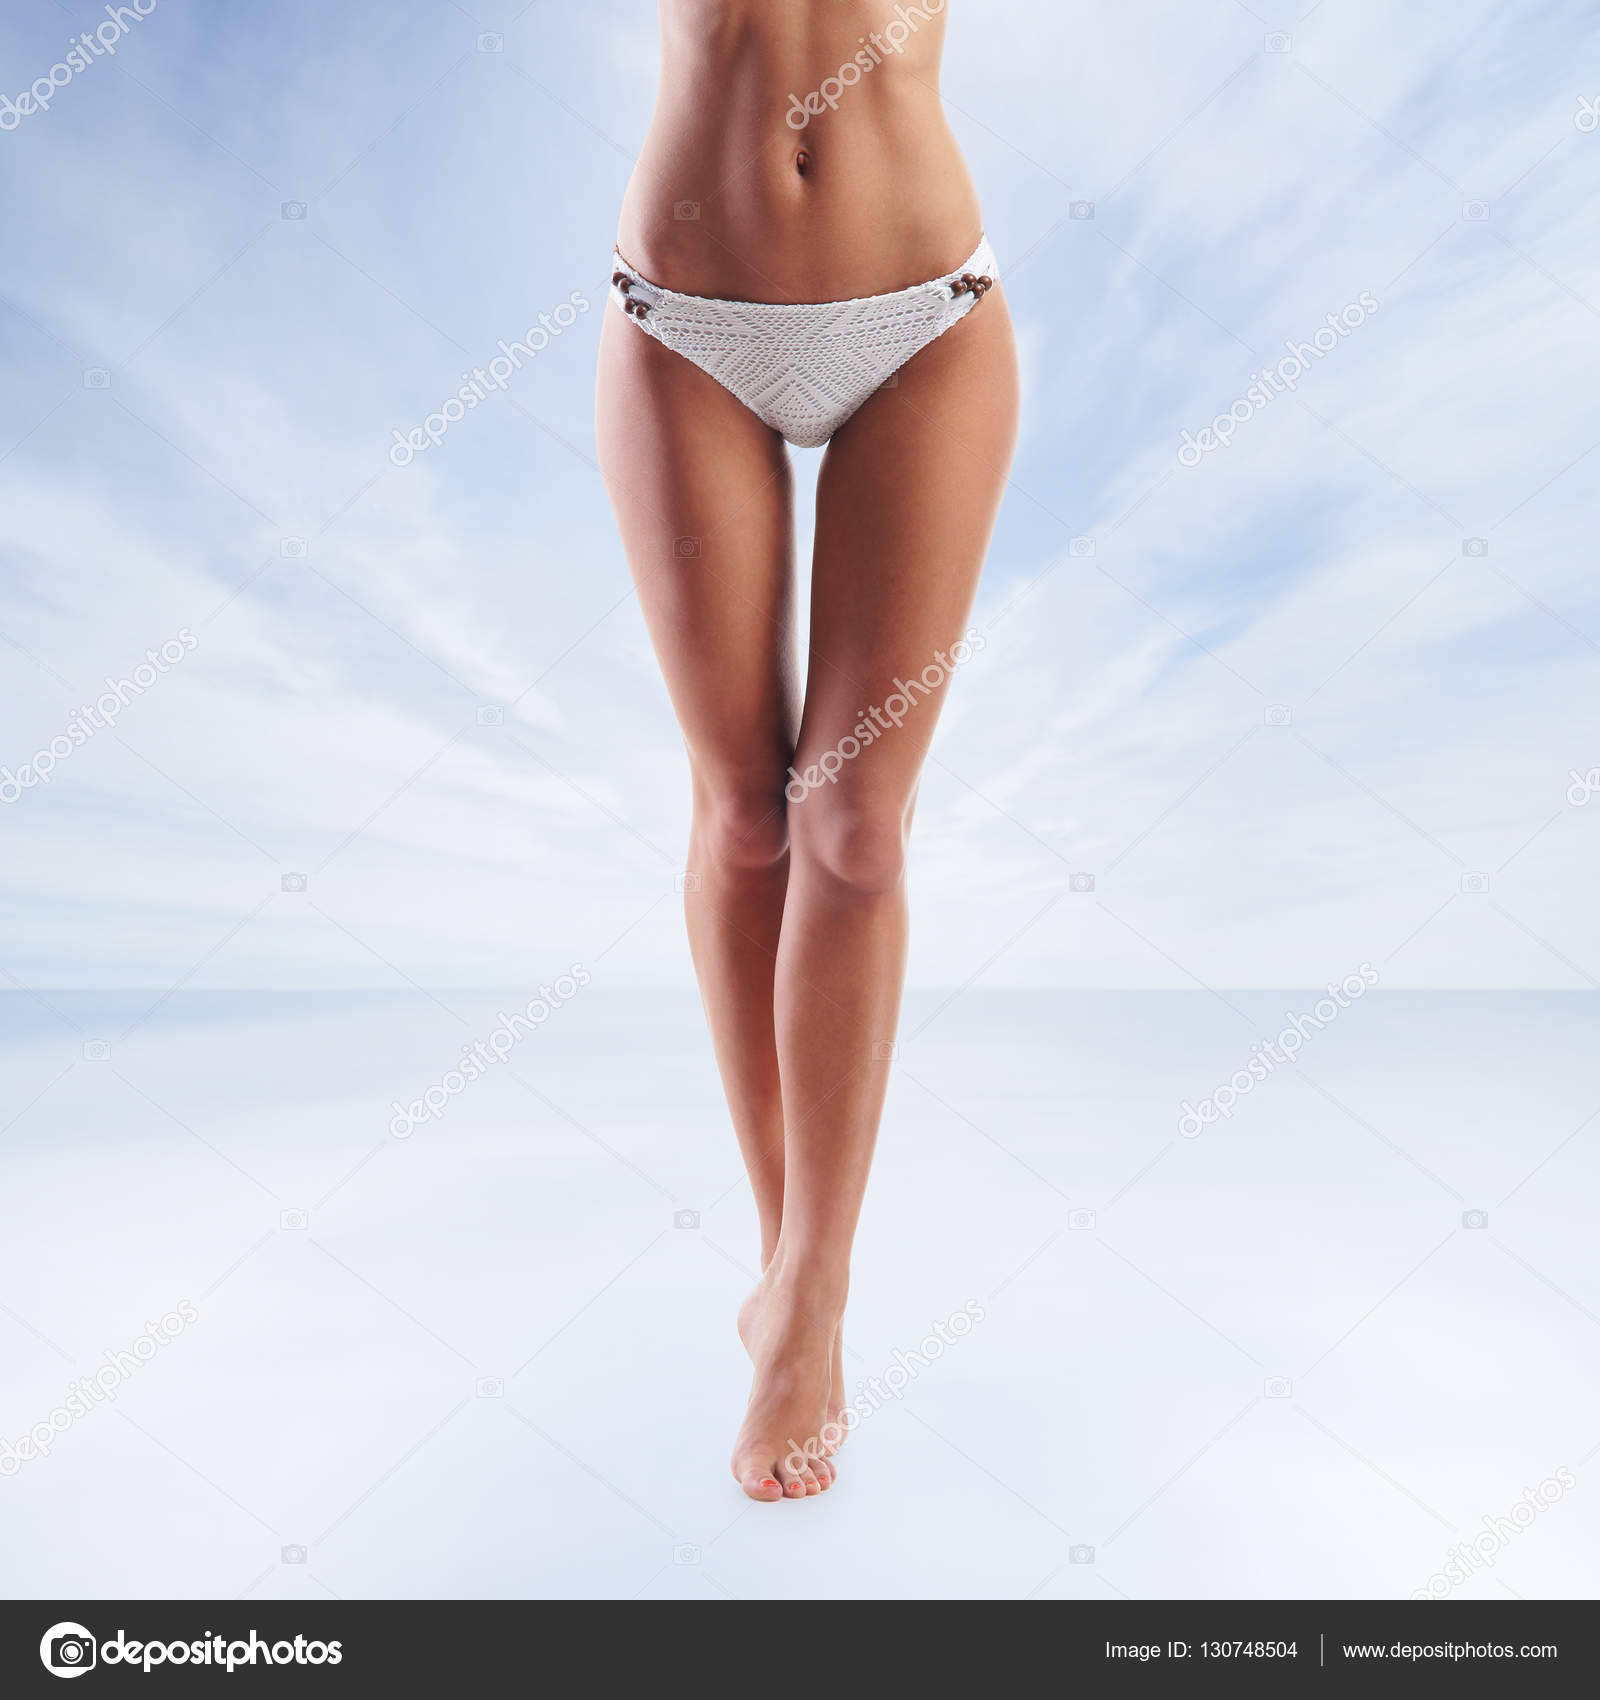 Slender And Fit Legs Of Young Woman Stock Photo C Shmeljov 130748504 We believe in helping you find the product that is right for you. slender and fit legs of young woman stock photo c shmeljov 130748504